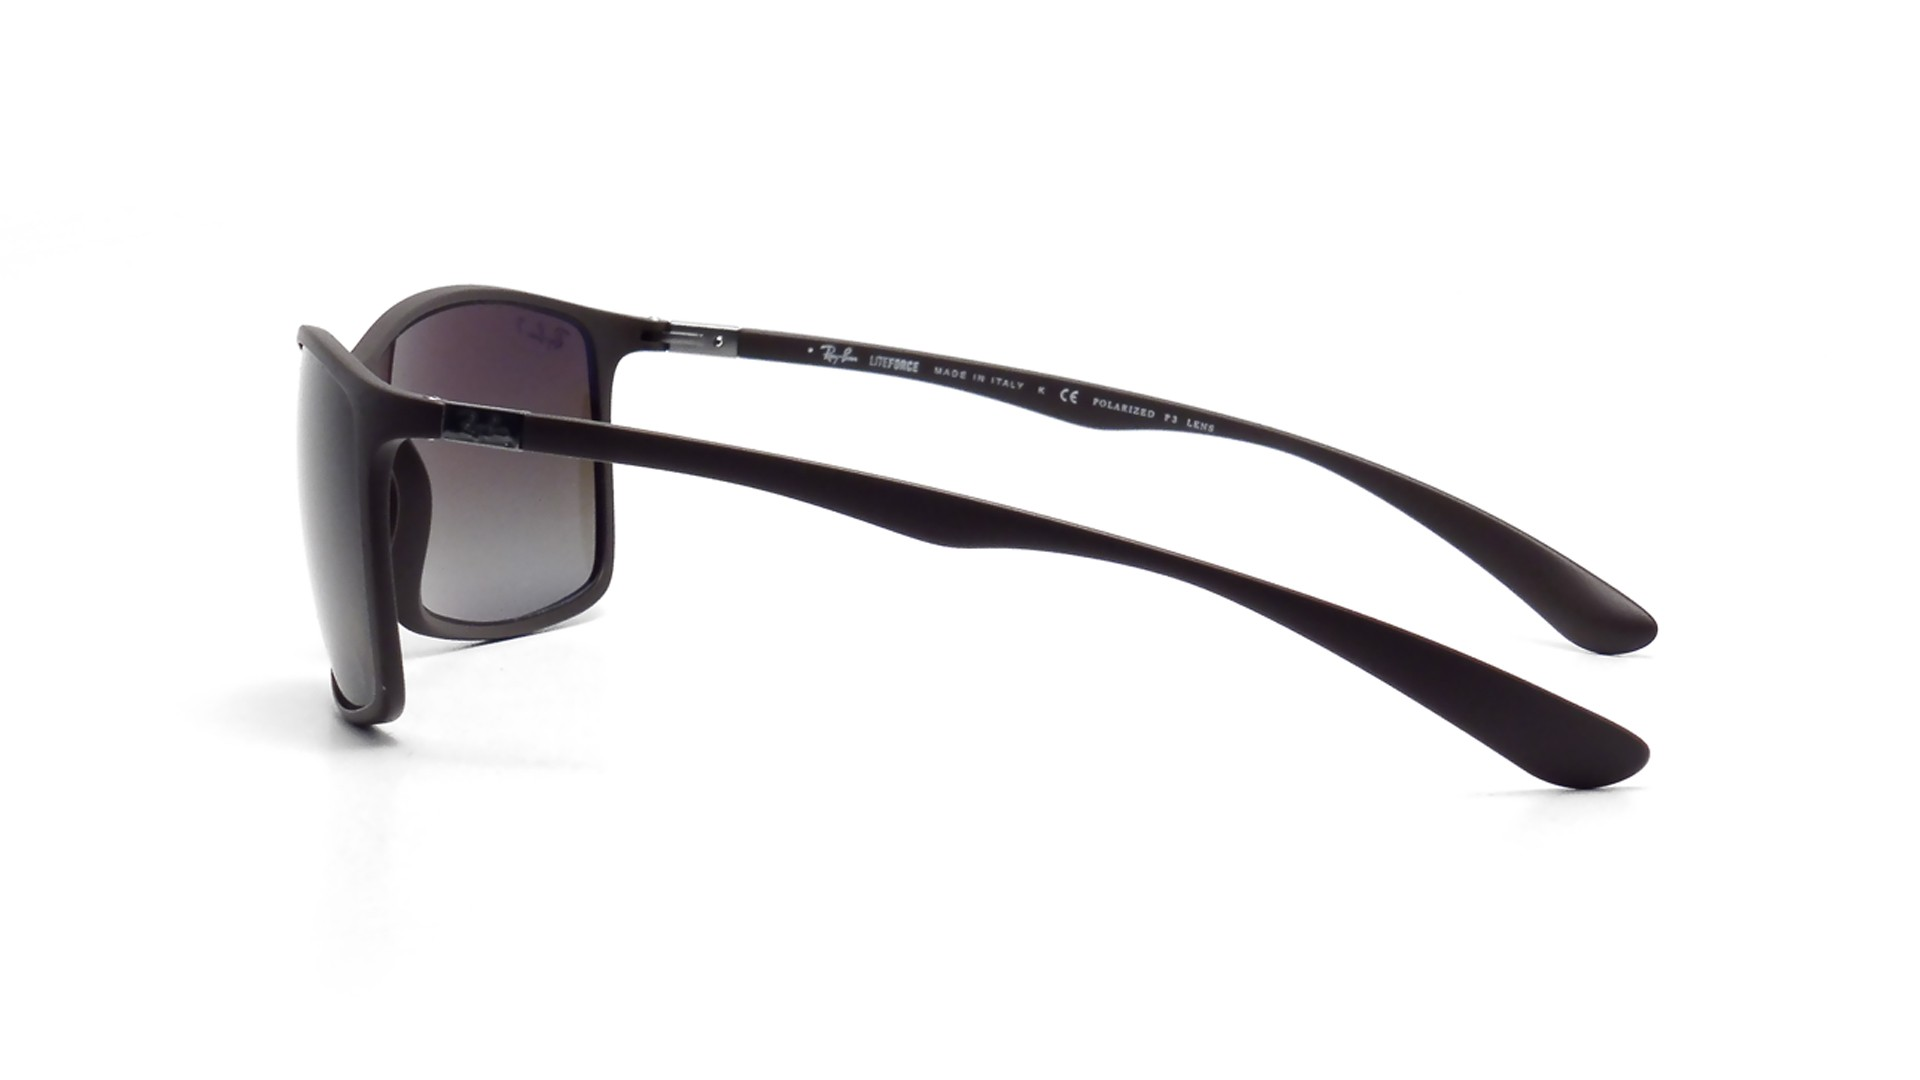 8fa03c7574 Ray Ban Liteforce Tech Reviews